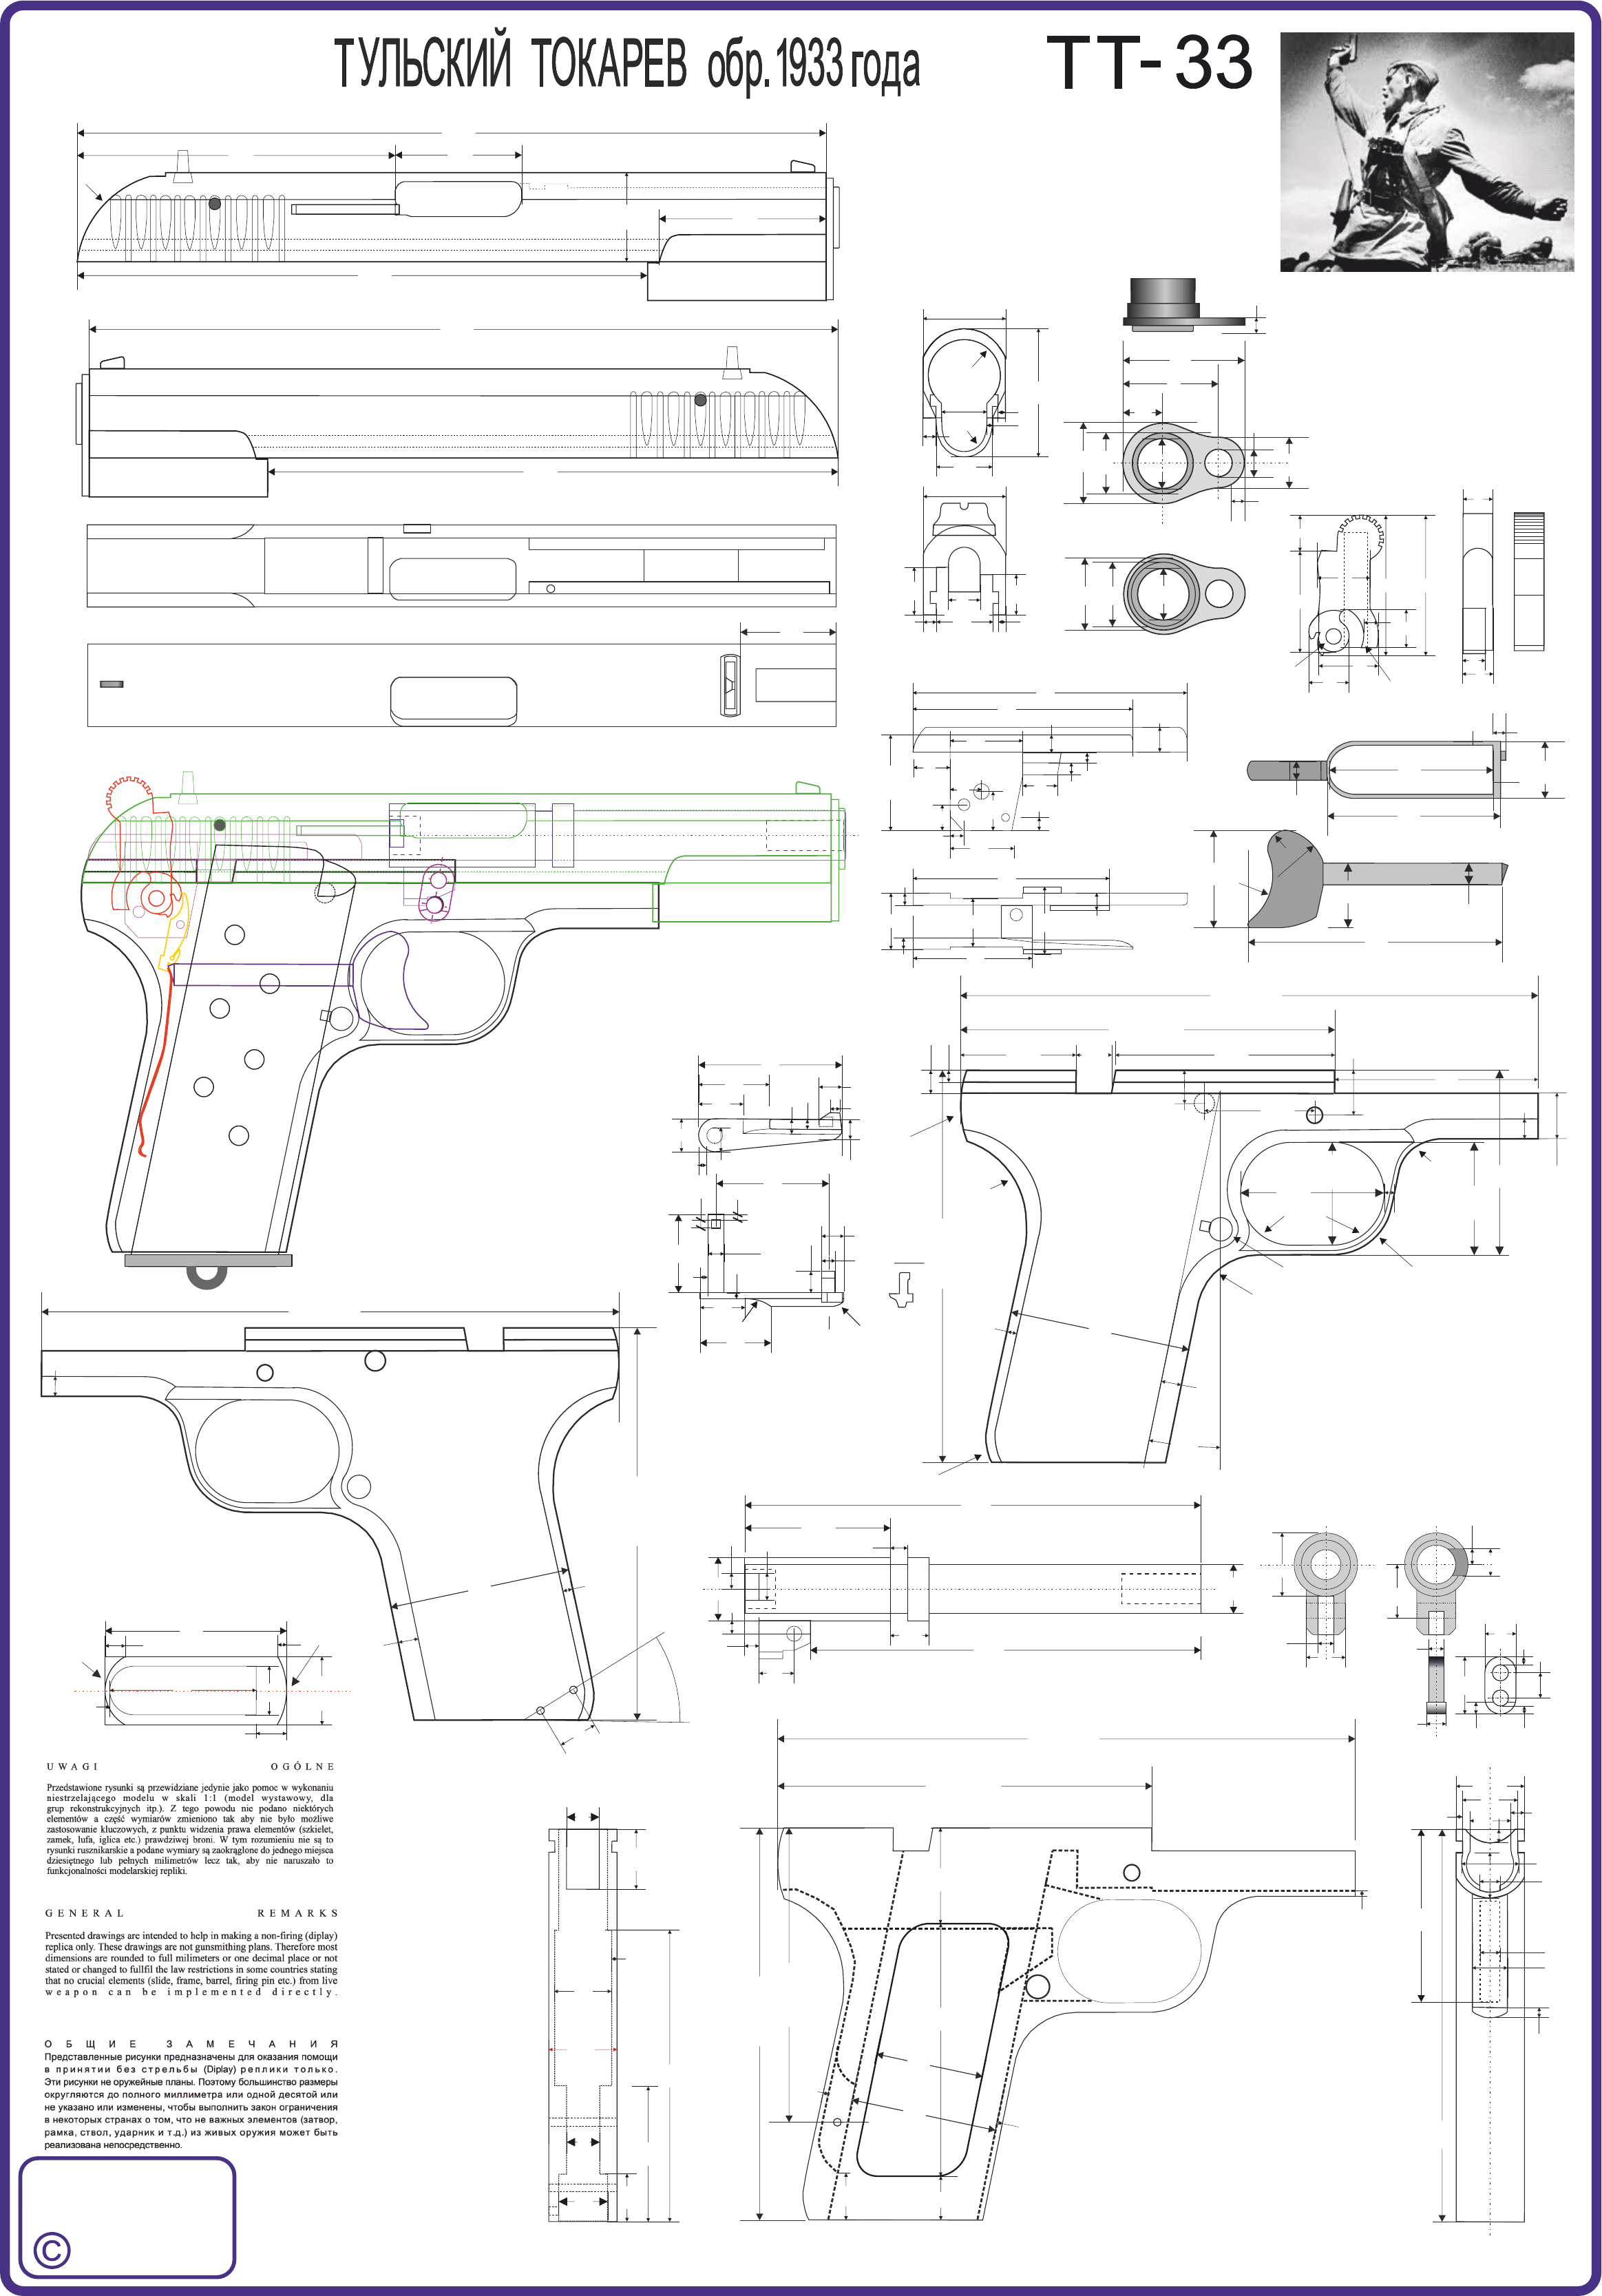 TT 33 Model Blueprints Drawings of Main Parts - [PDF Document]FDOCUMENTS